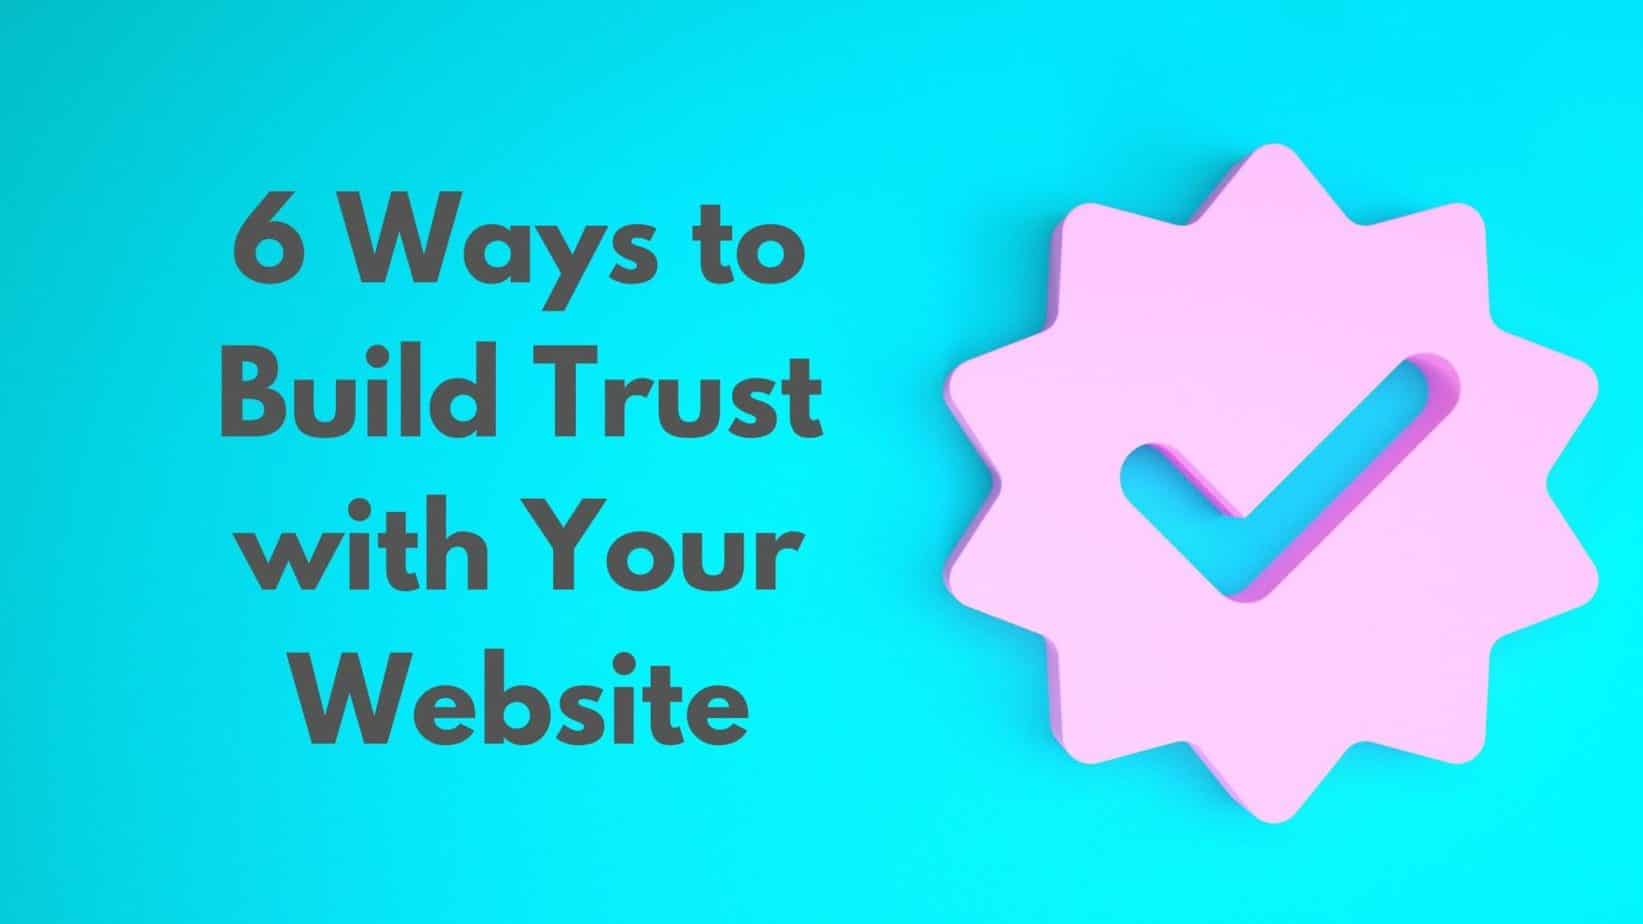 6 Ways to Build Trust with Your Website